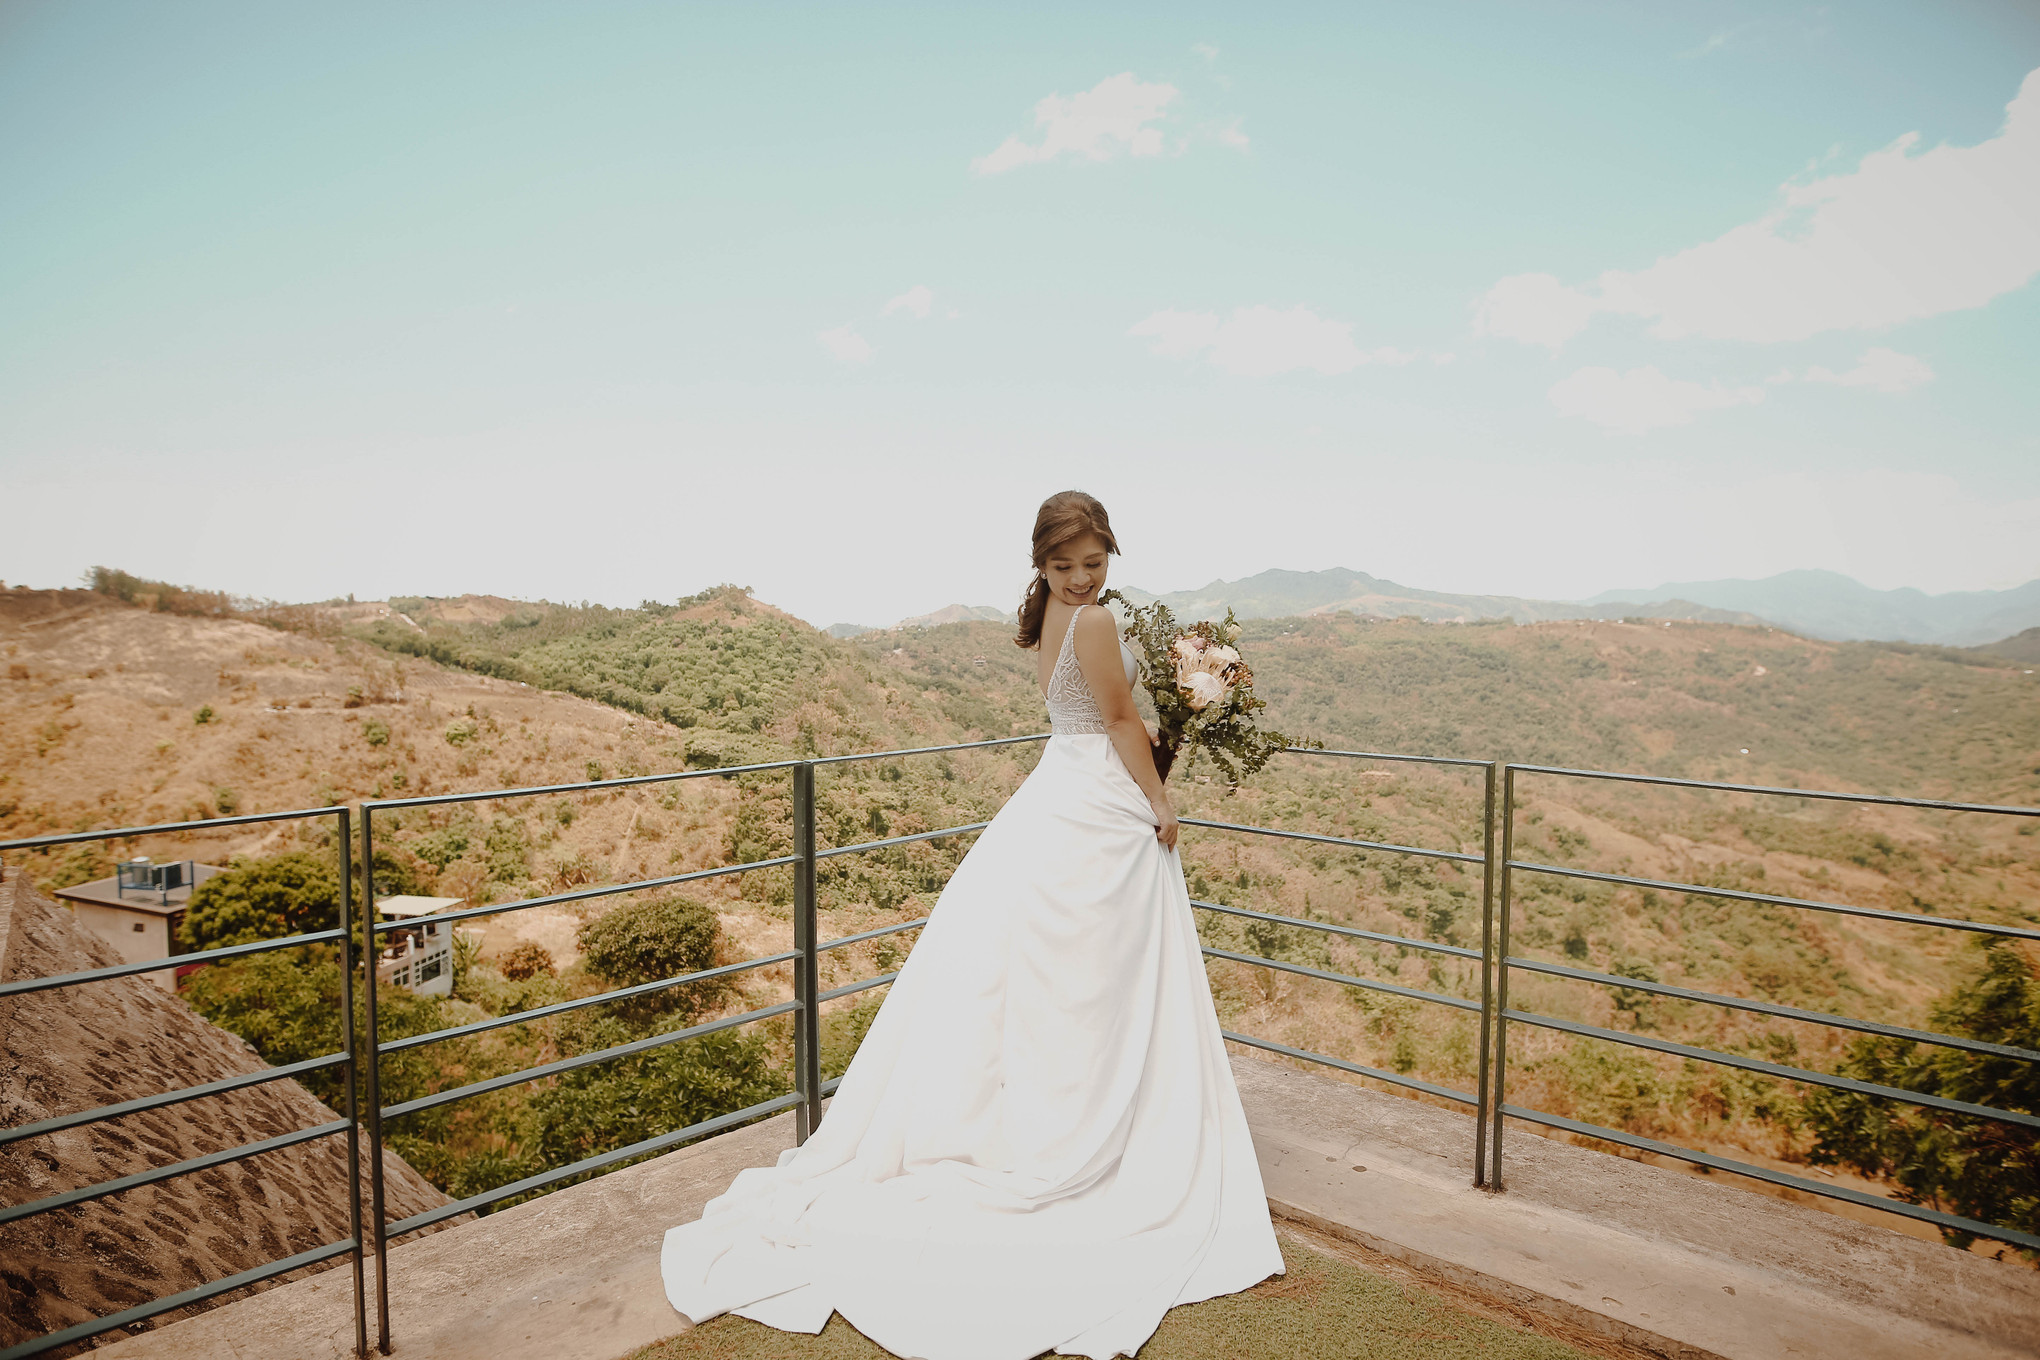 A Charming Mountain Countryside Wedding On A Budget